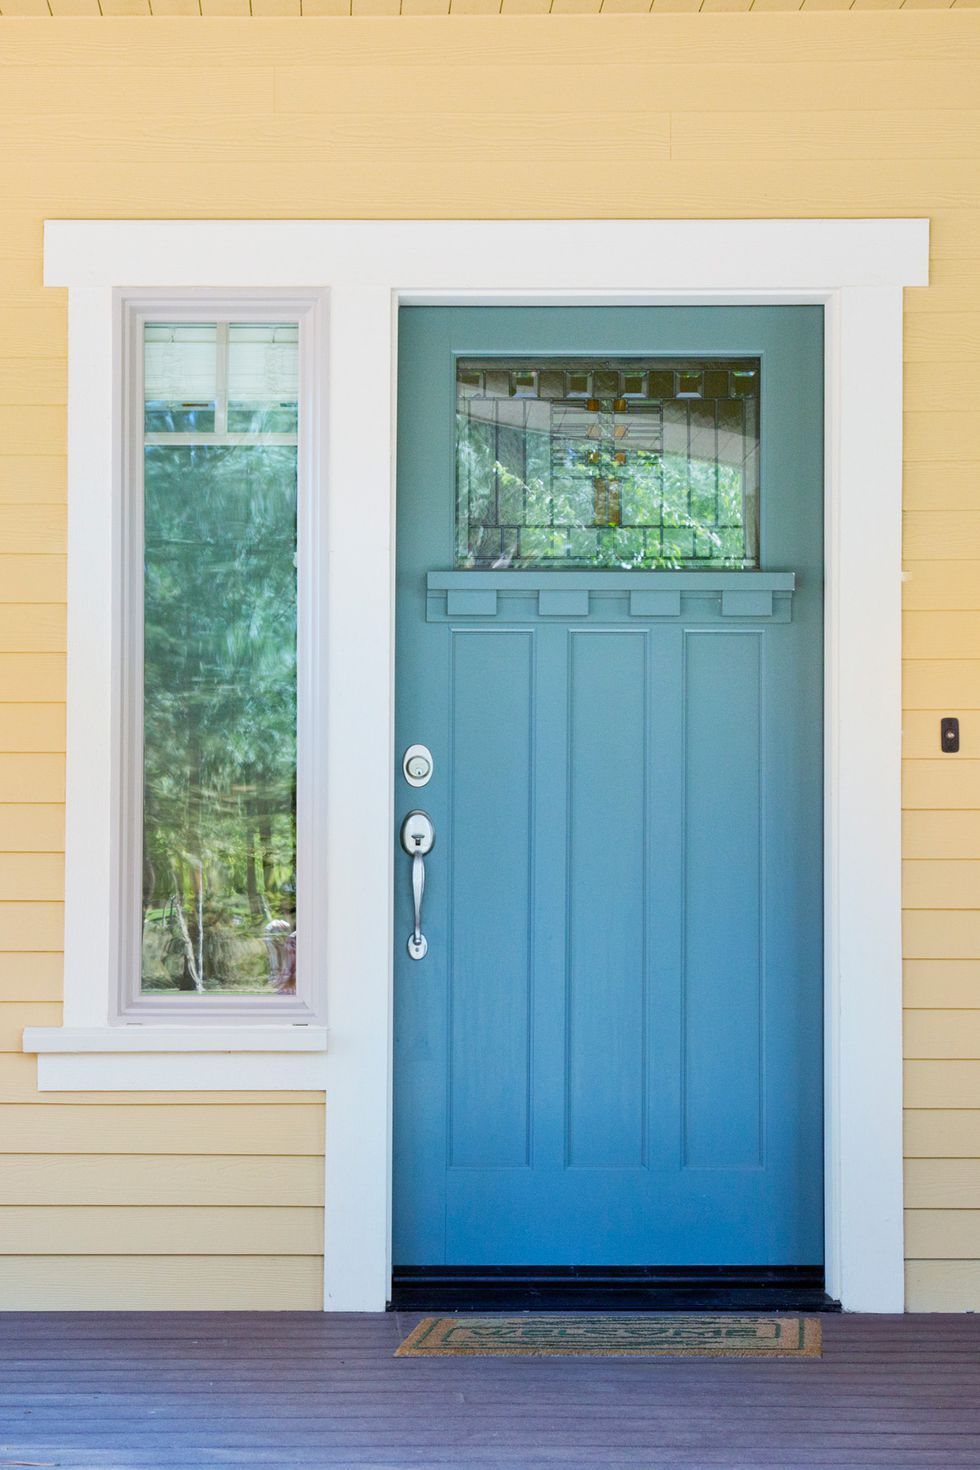 home projects designers say pay for themselves over time doors